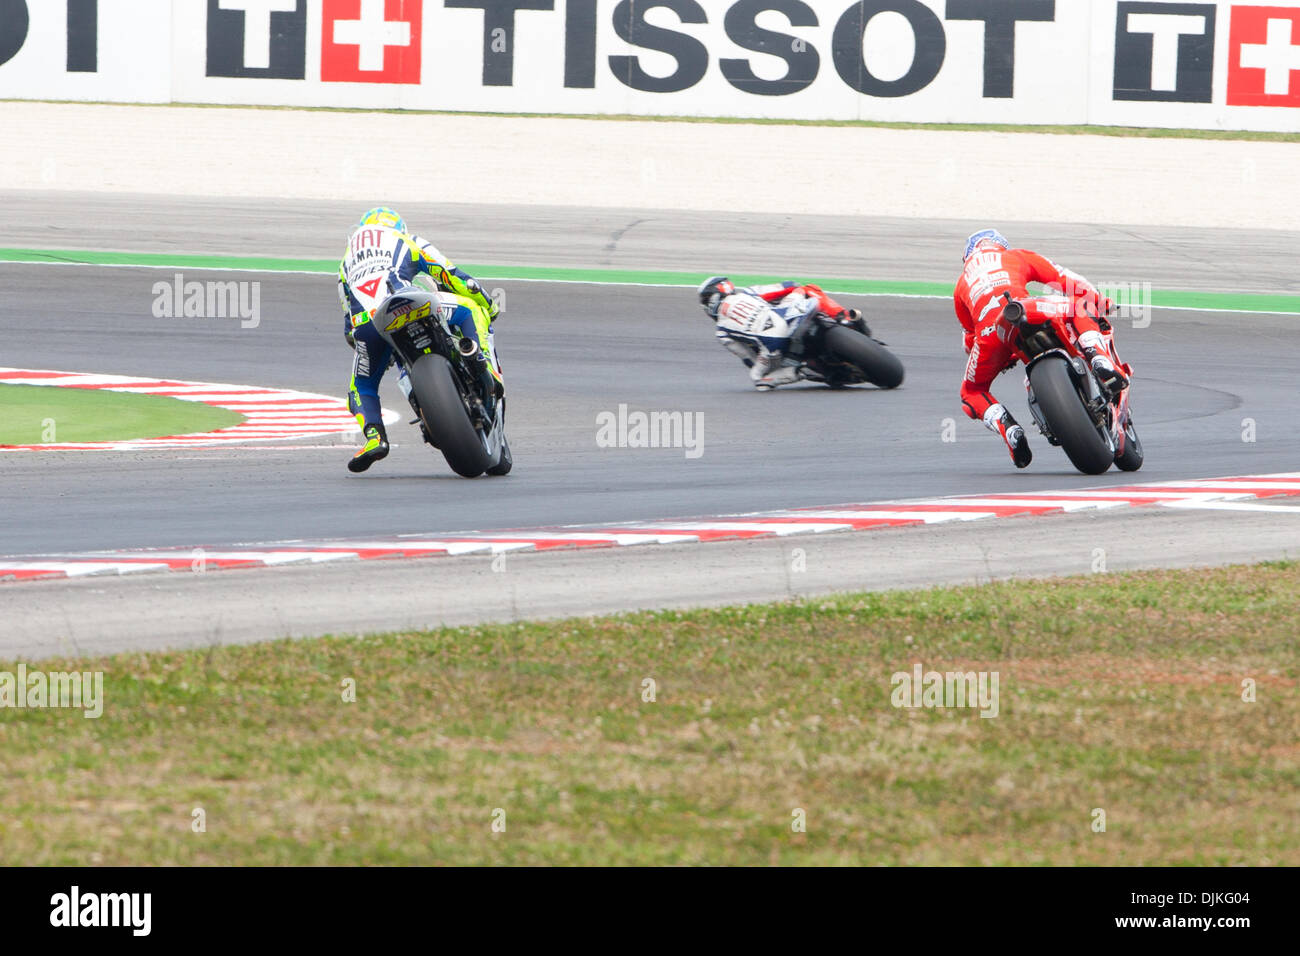 Sep. 05, 2010 - Misano Adriatico, Italy - Valentino Rossi (left, ITA #46) and Casey Stoner (right, AUS #27) battling for the 3rd place at the San Marino GP (Credit Image: © Andrea Ranalli/Southcreek Global/ZUMApress.com) - Stock Image